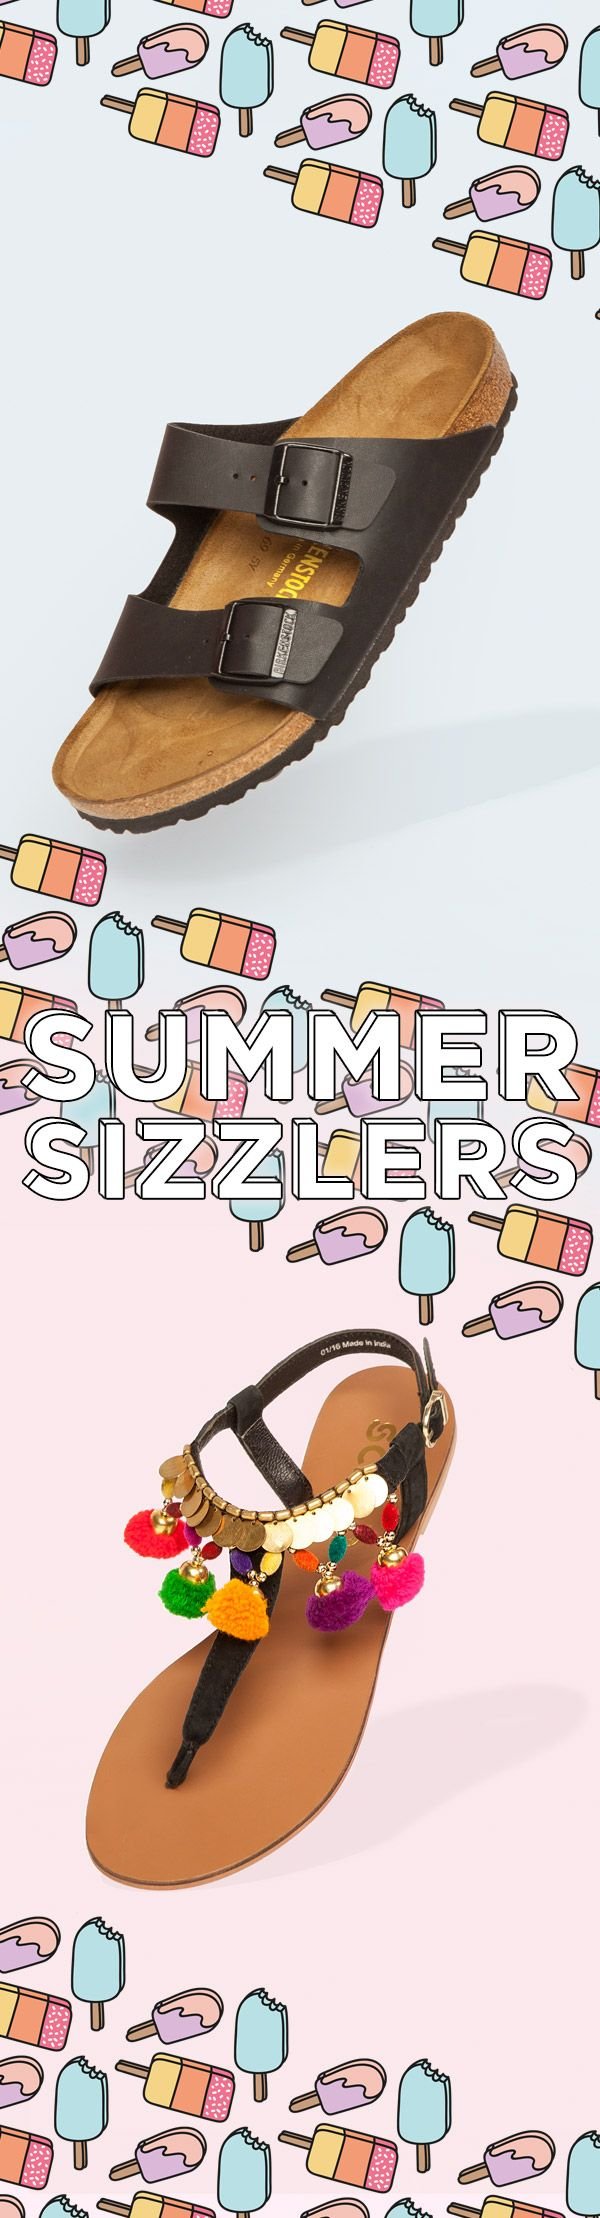 Sun's out. Sandals on! And we've got your feet covered with our summer sizzlers. You're welcome.